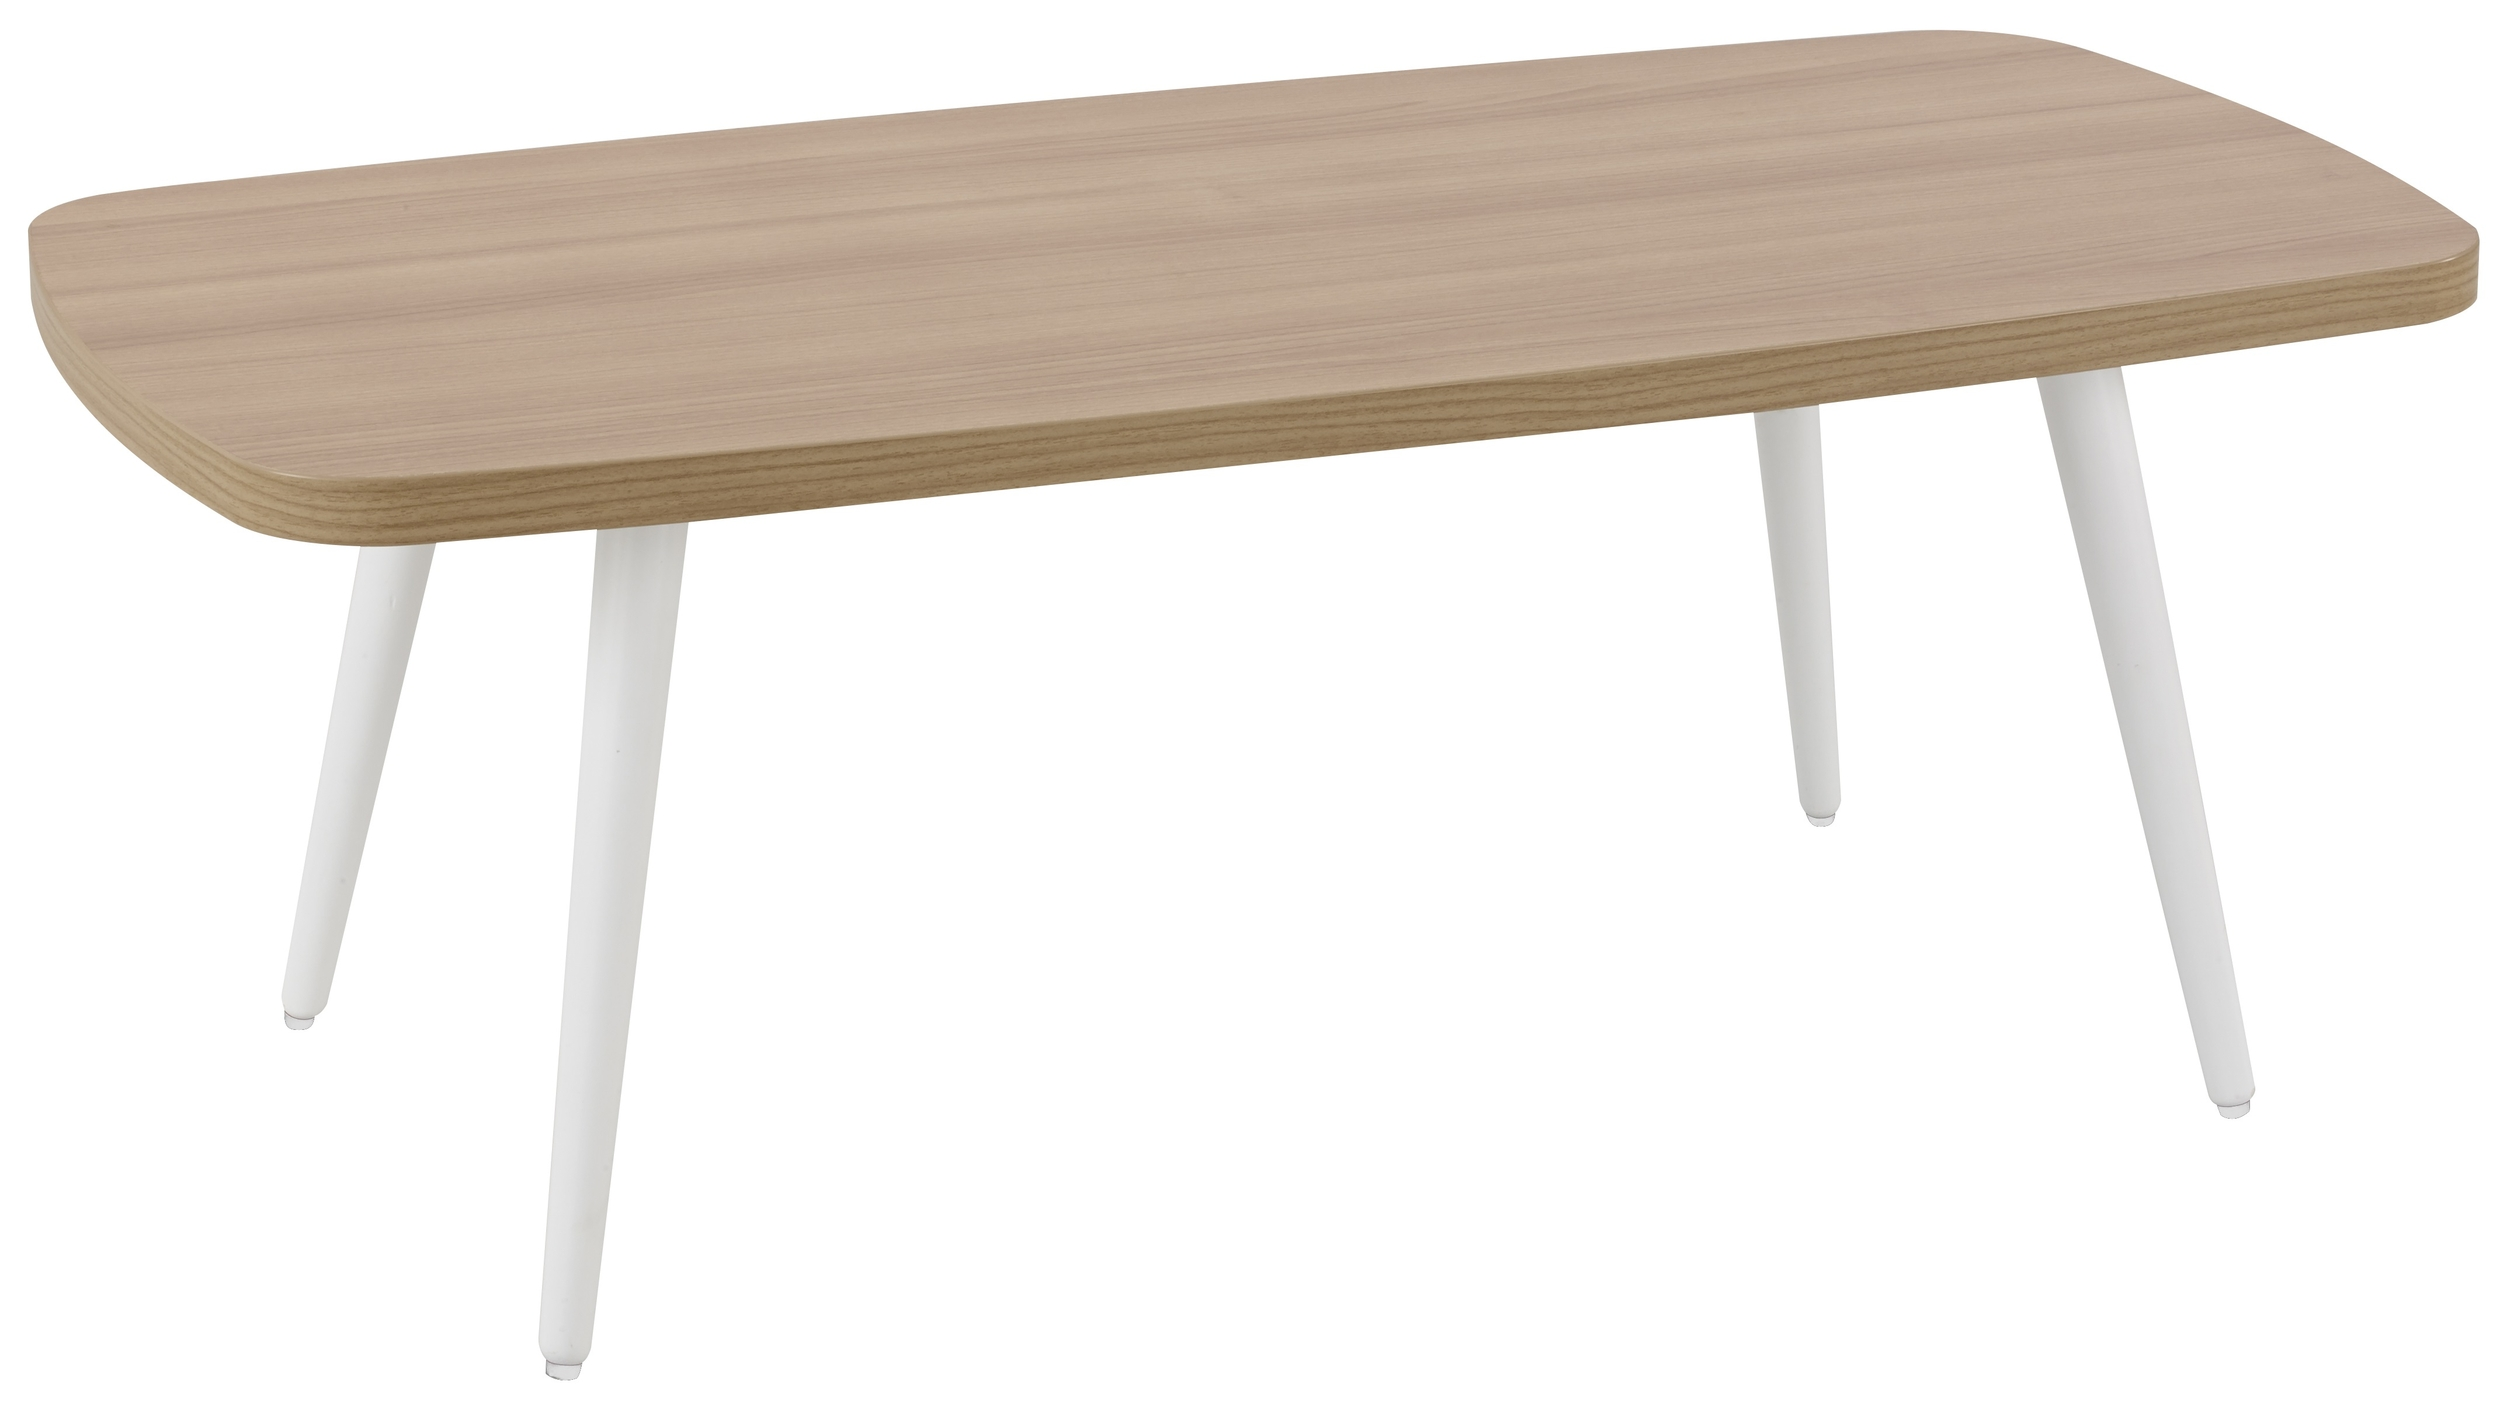 X-SPACE TABLE BASSE RECTANGLE MERISIER